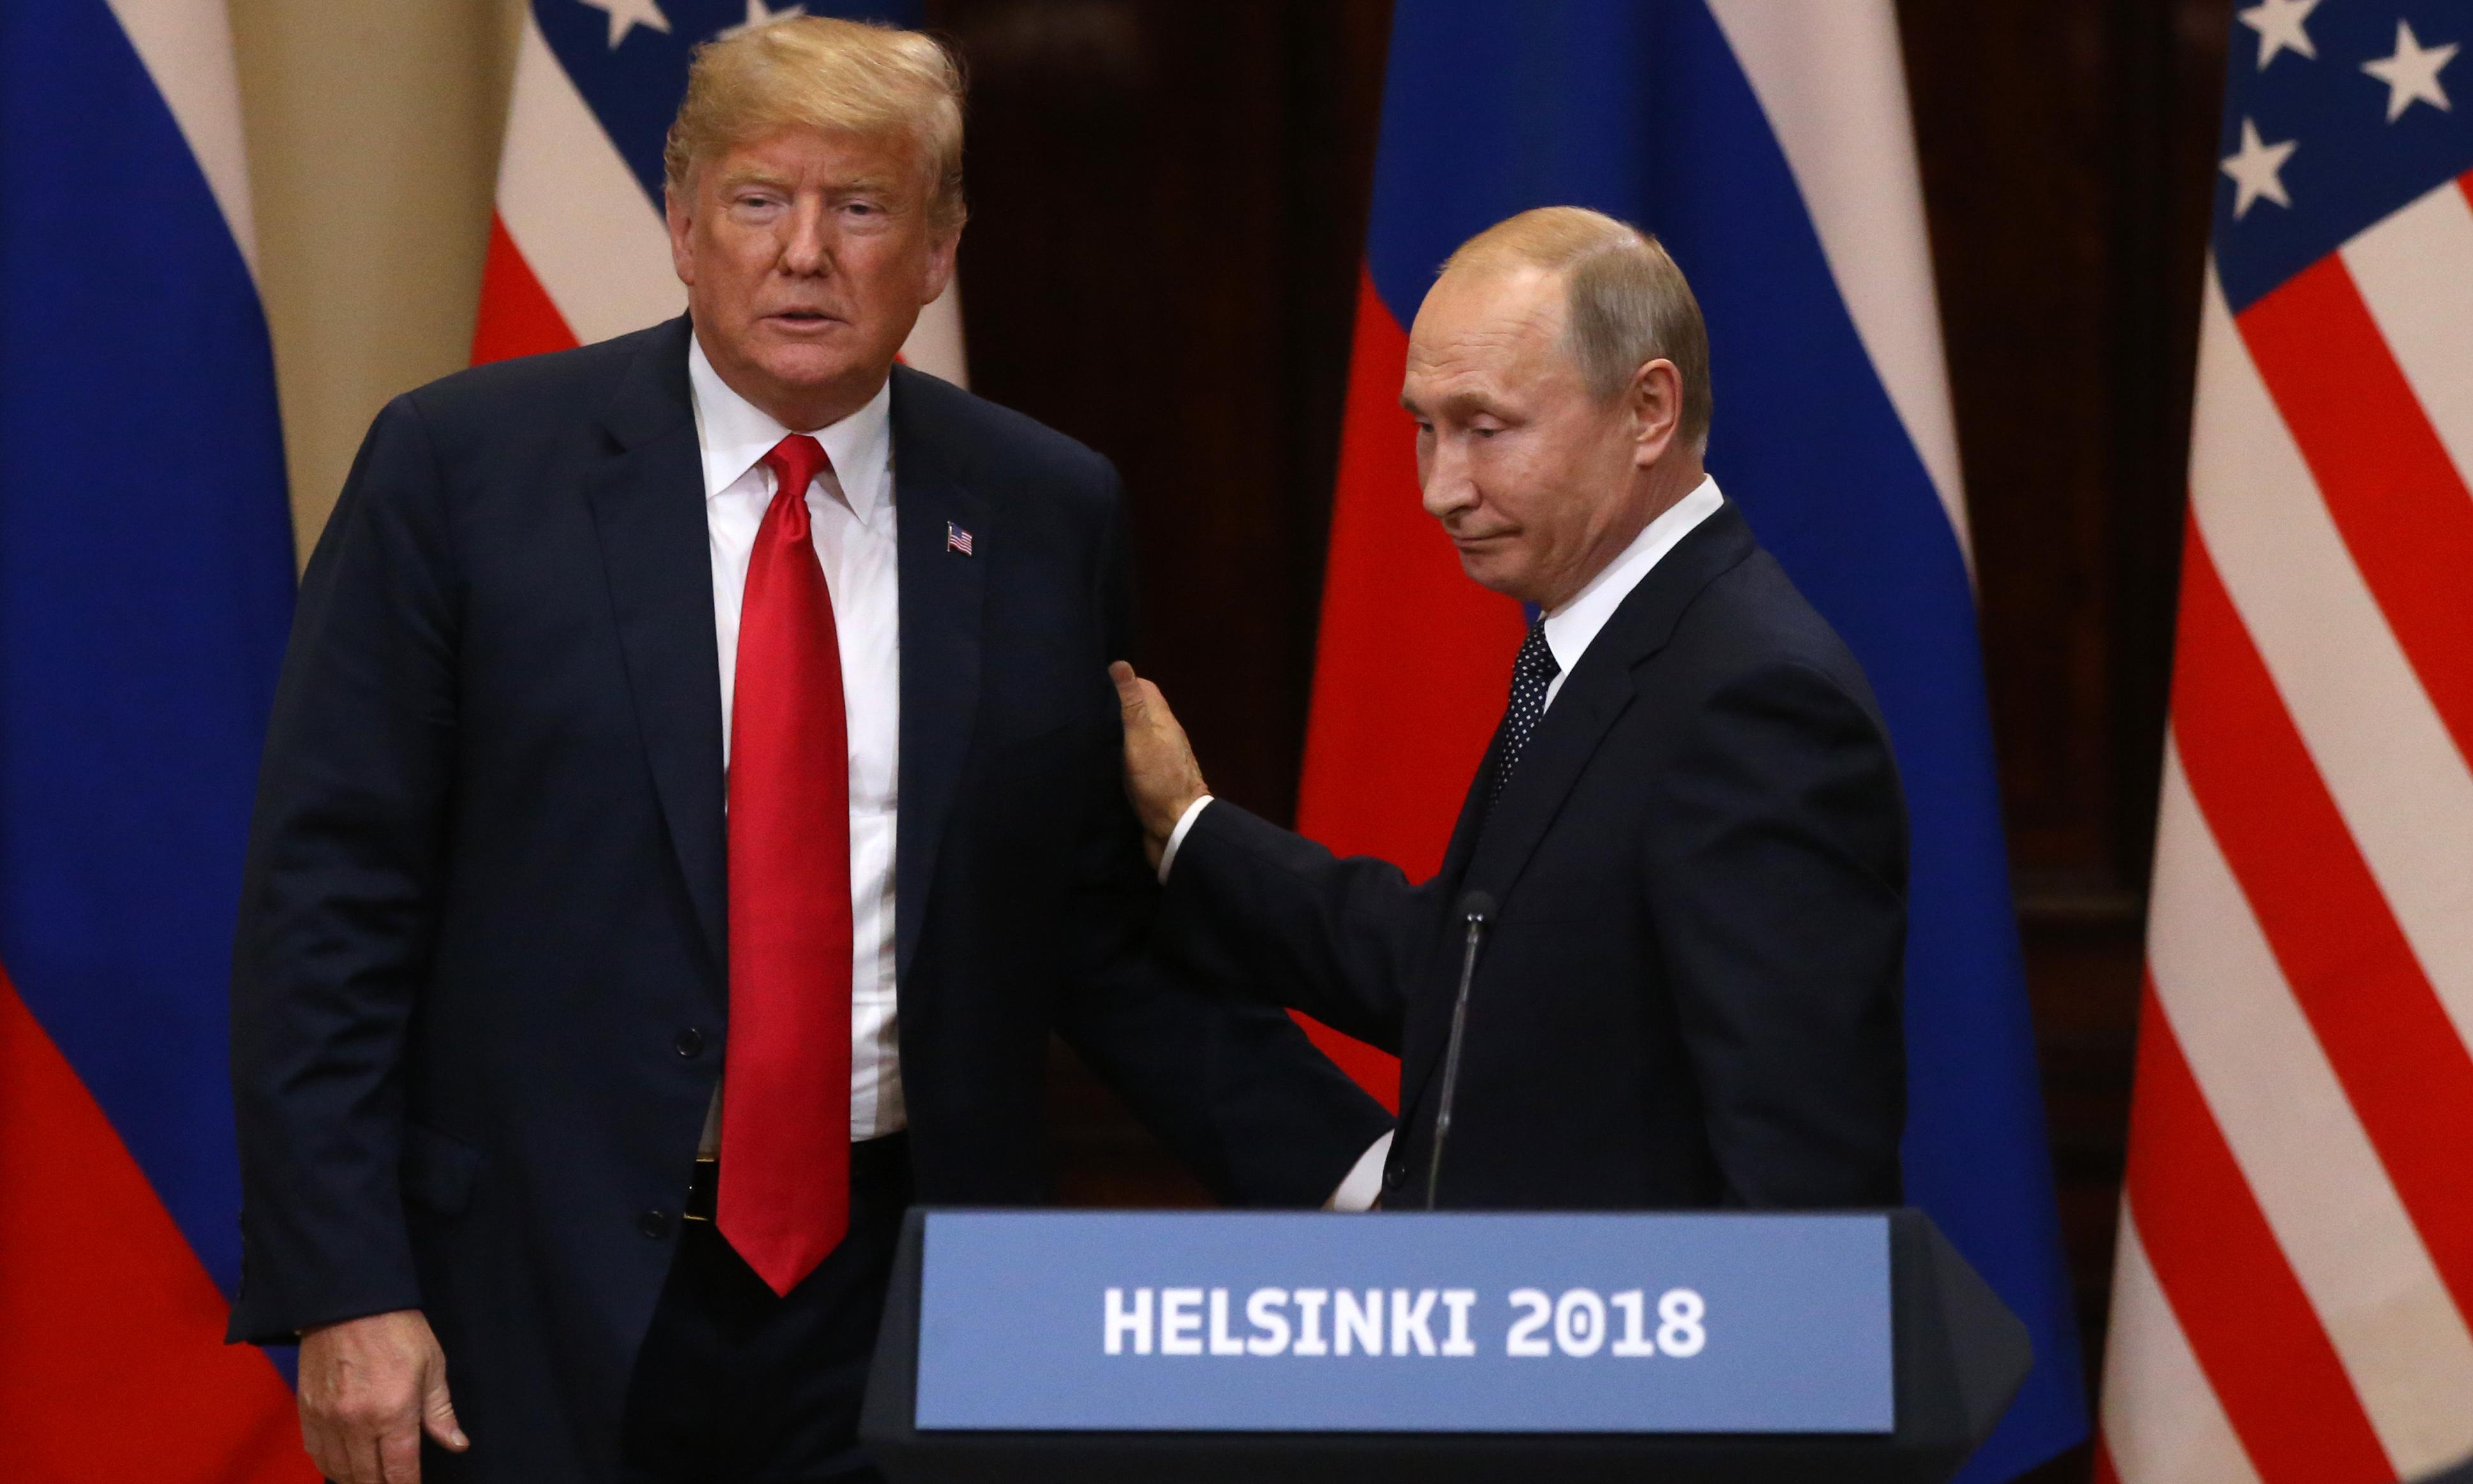 US in virtual tie with Russia on global confidence, poll finds